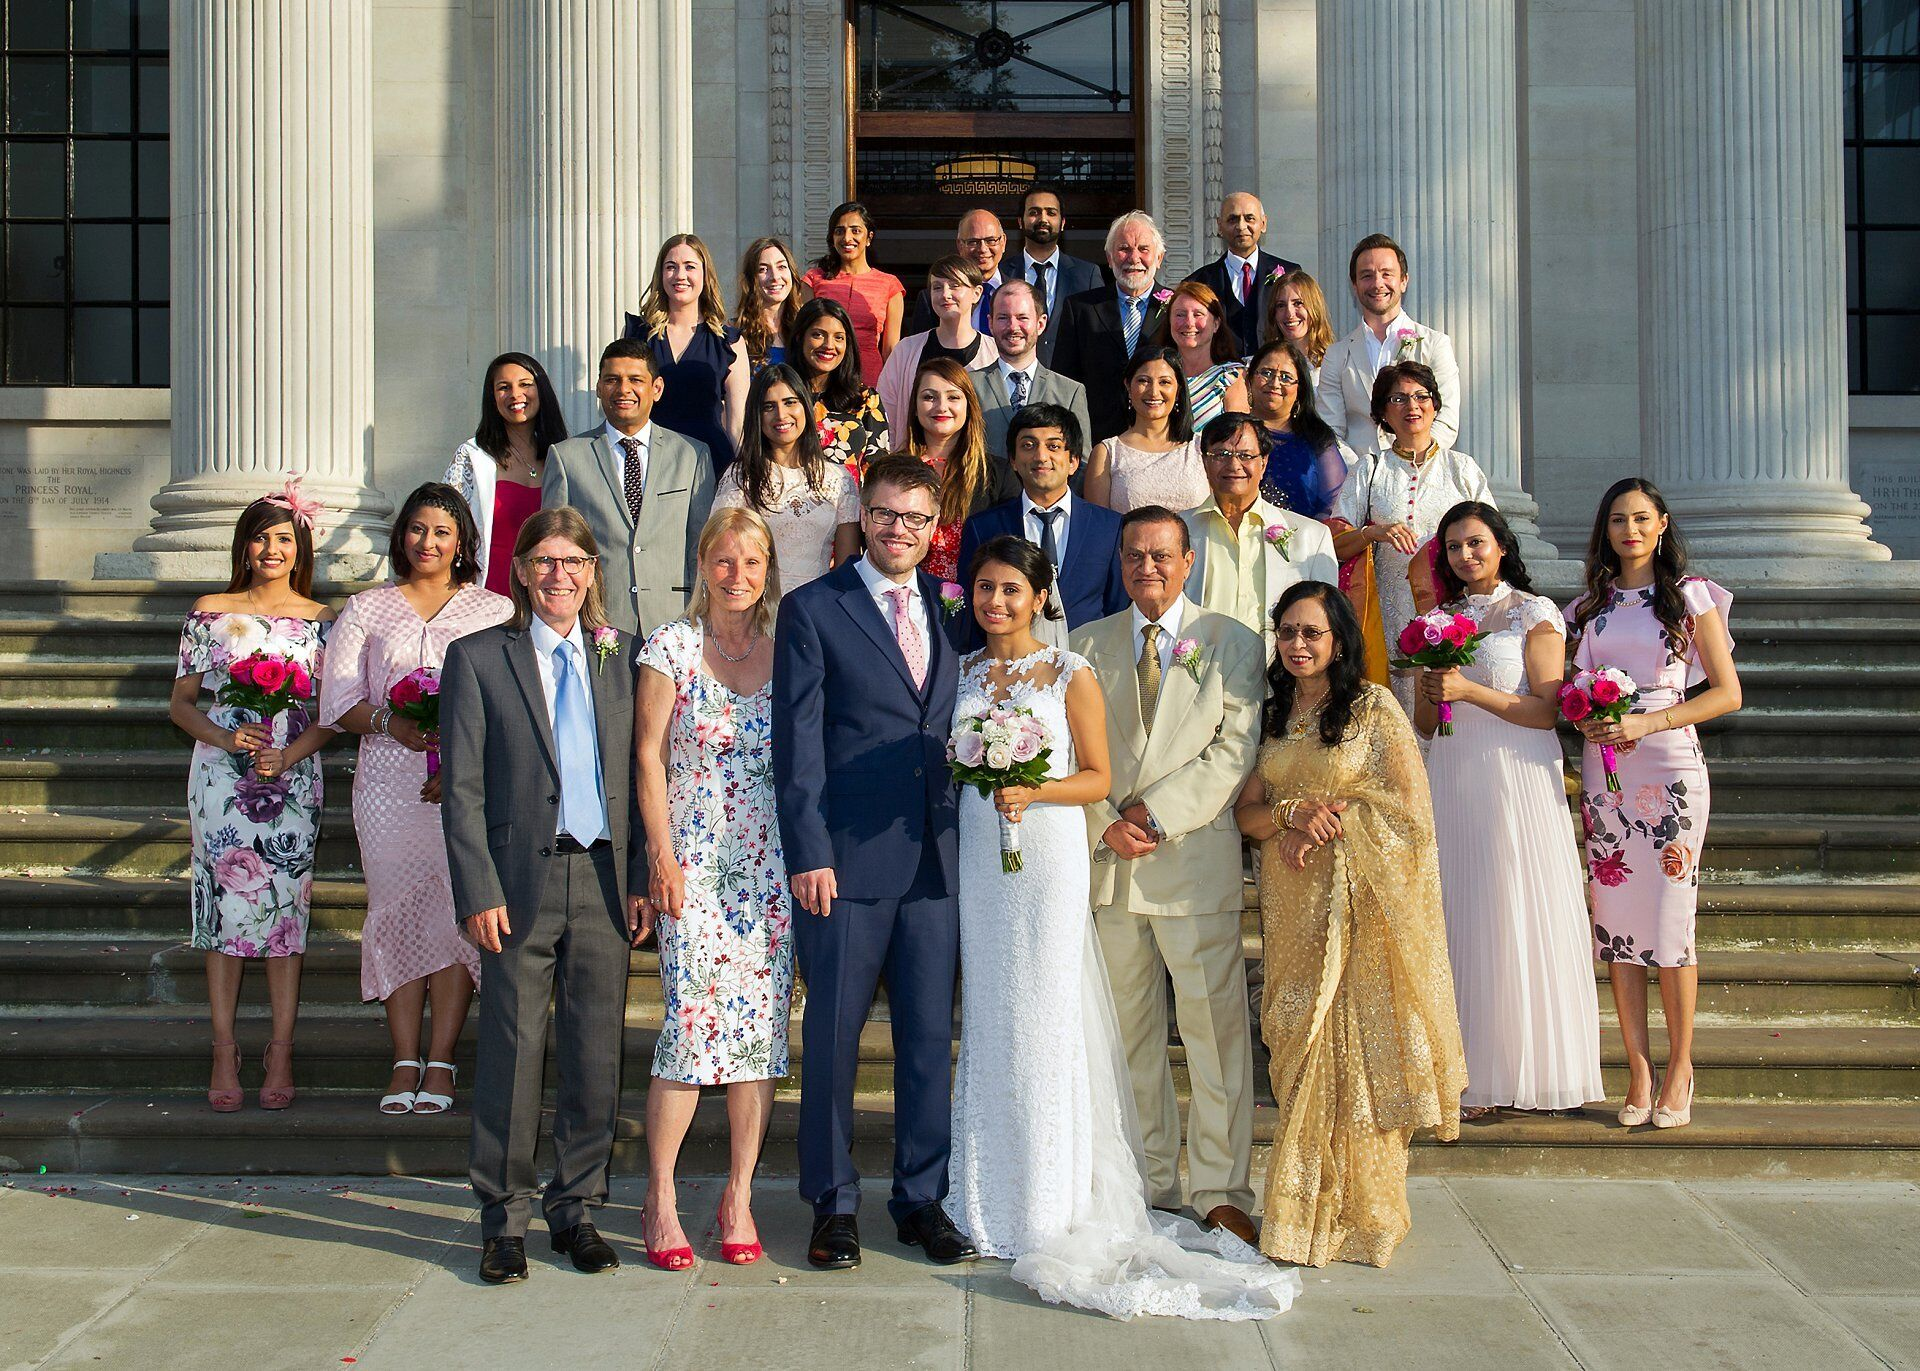 wedding photography small wedding with up to 30 guests on steps of famous old marylebone town hall